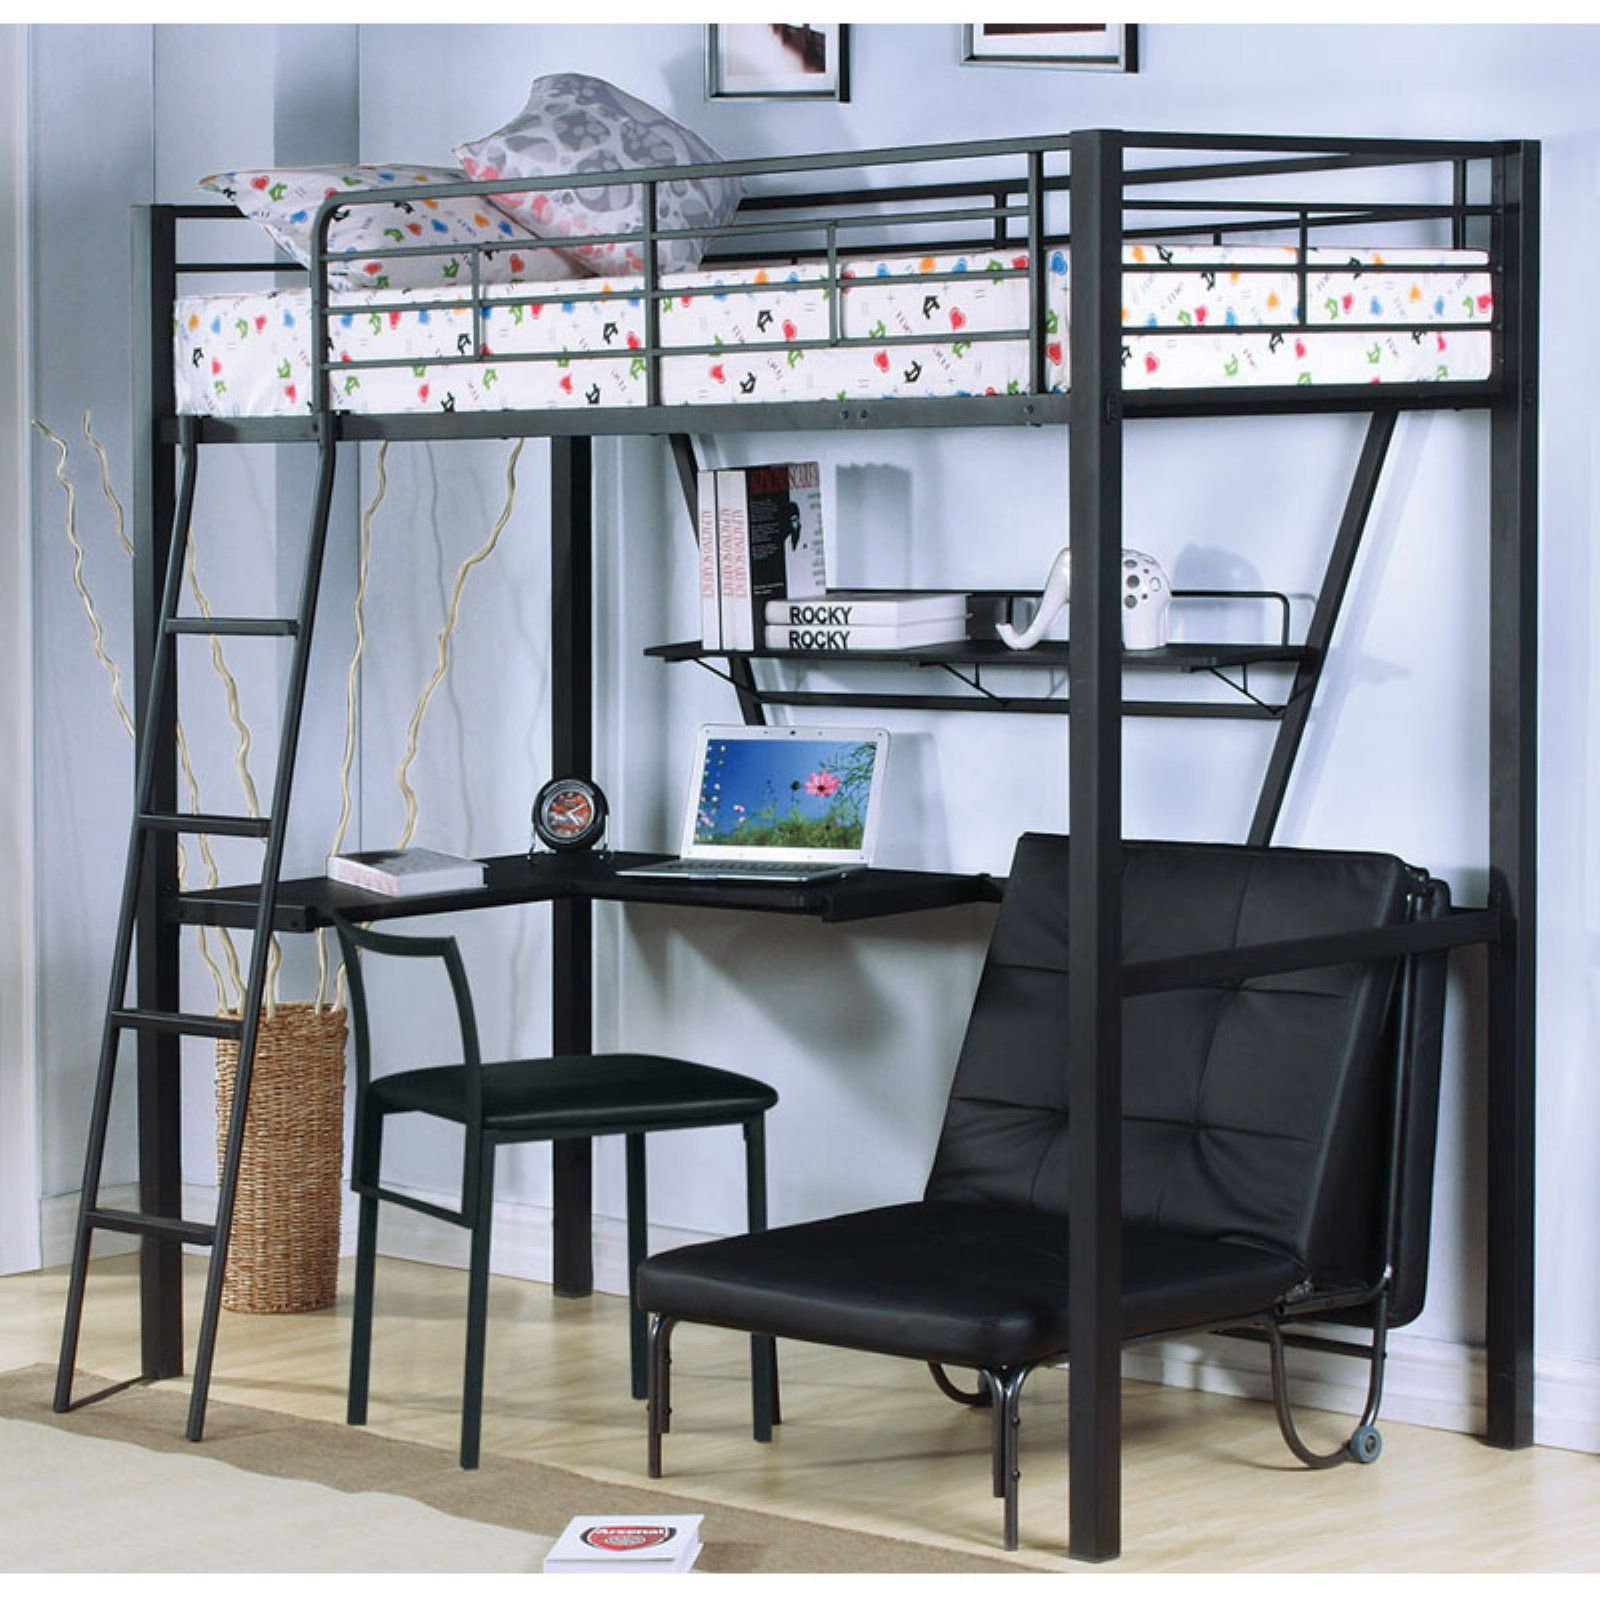 Groovy Acme Furniture Senon Twin Loft Bed With Desk In 2019 Loft Bralicious Painted Fabric Chair Ideas Braliciousco